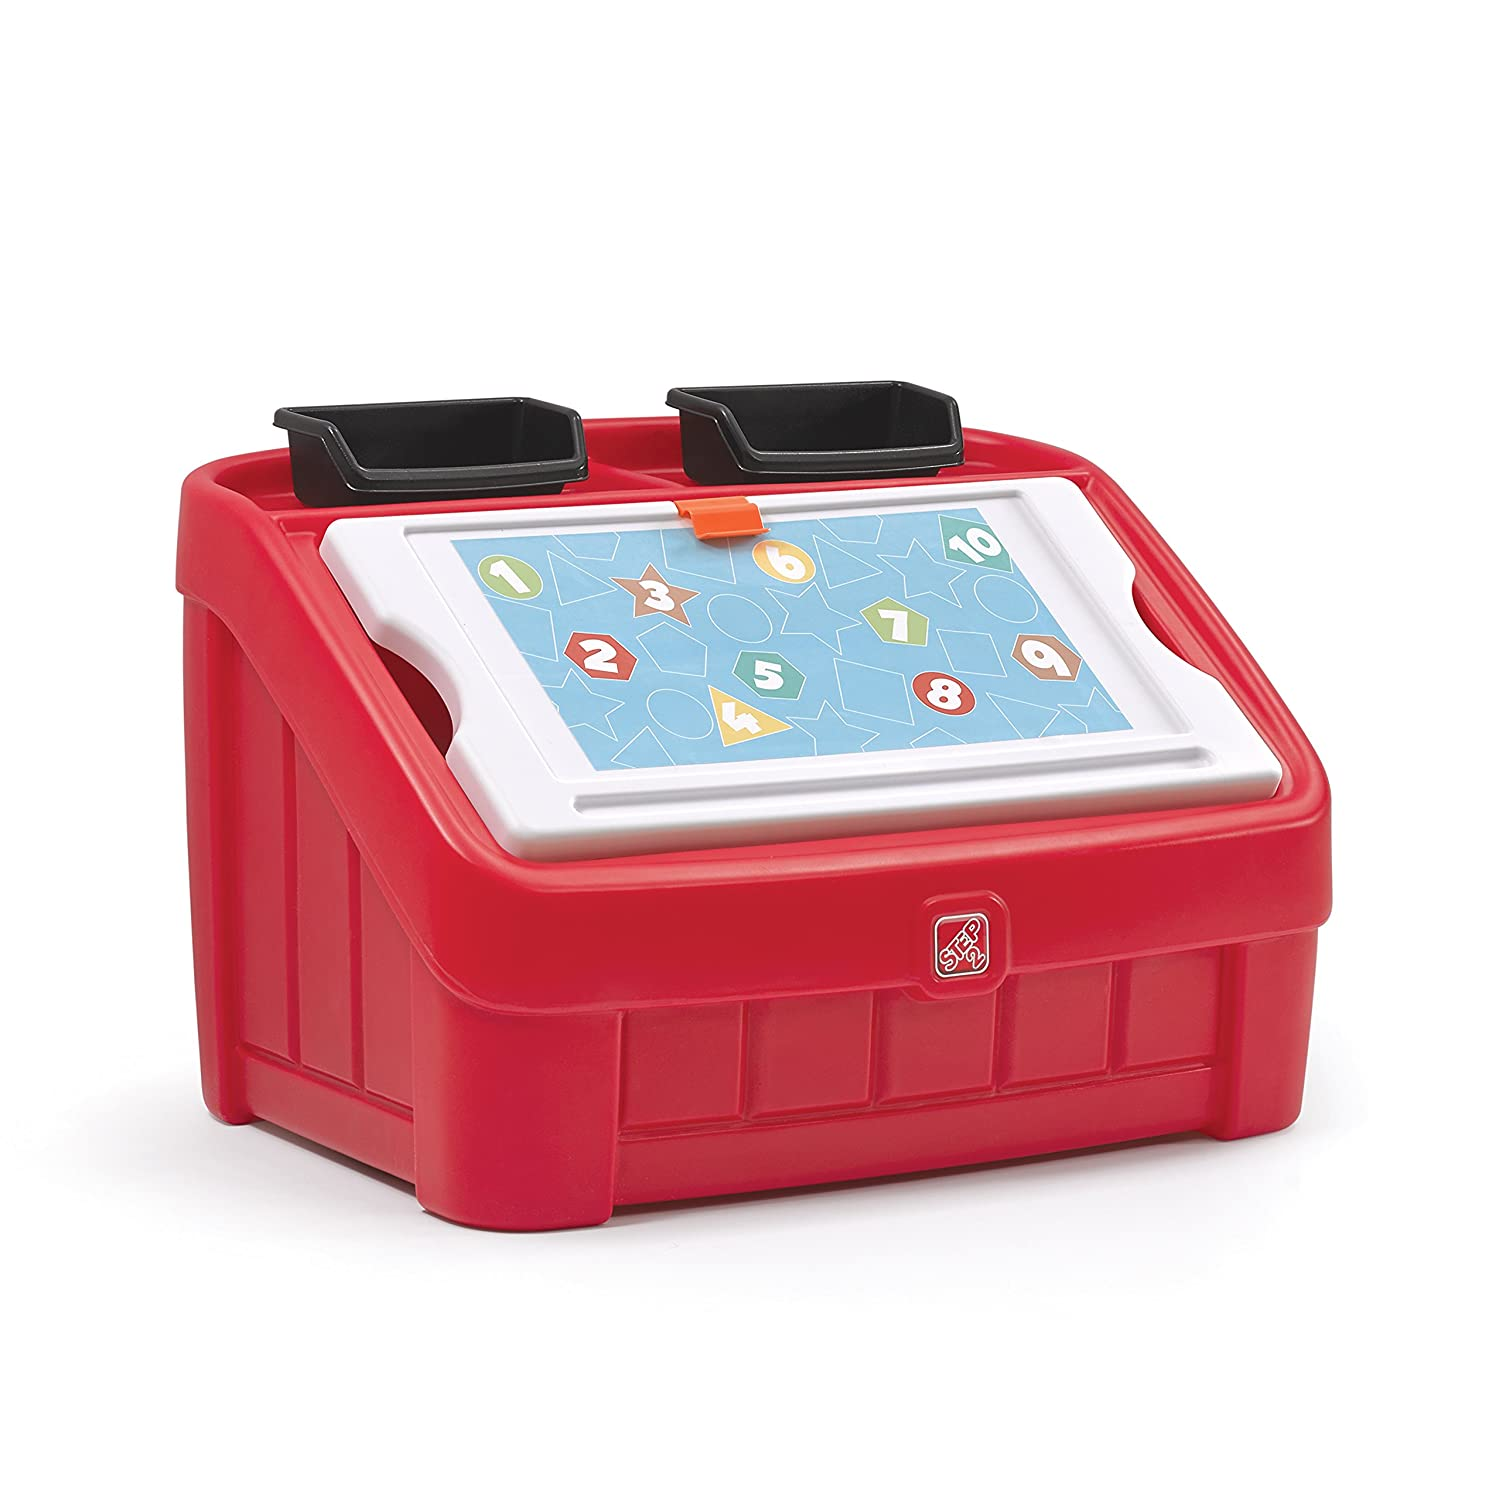 Step2 2-in-1 Toy Box and Art Lid, Red 848900